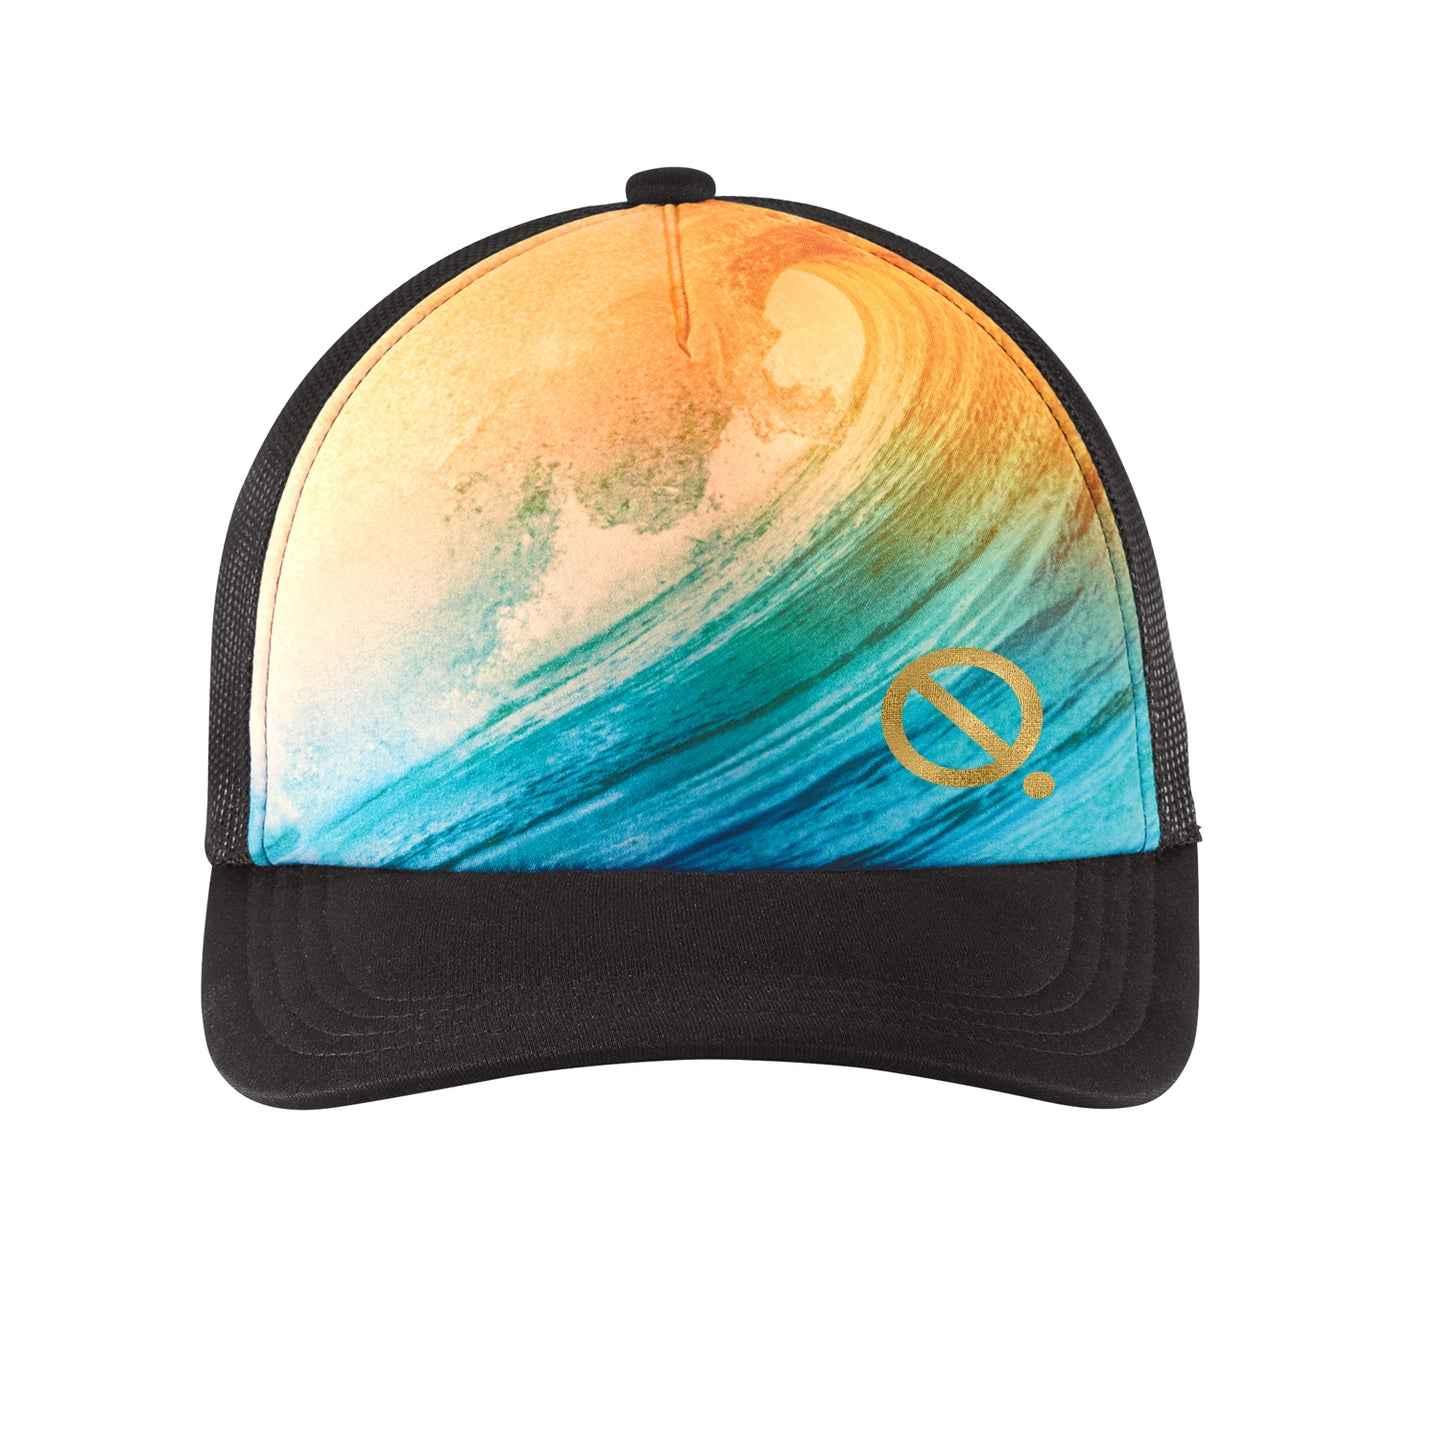 Quarantees signature Q in metallic gold on a unique ocean wave photo-real sublimated print trucker hat.